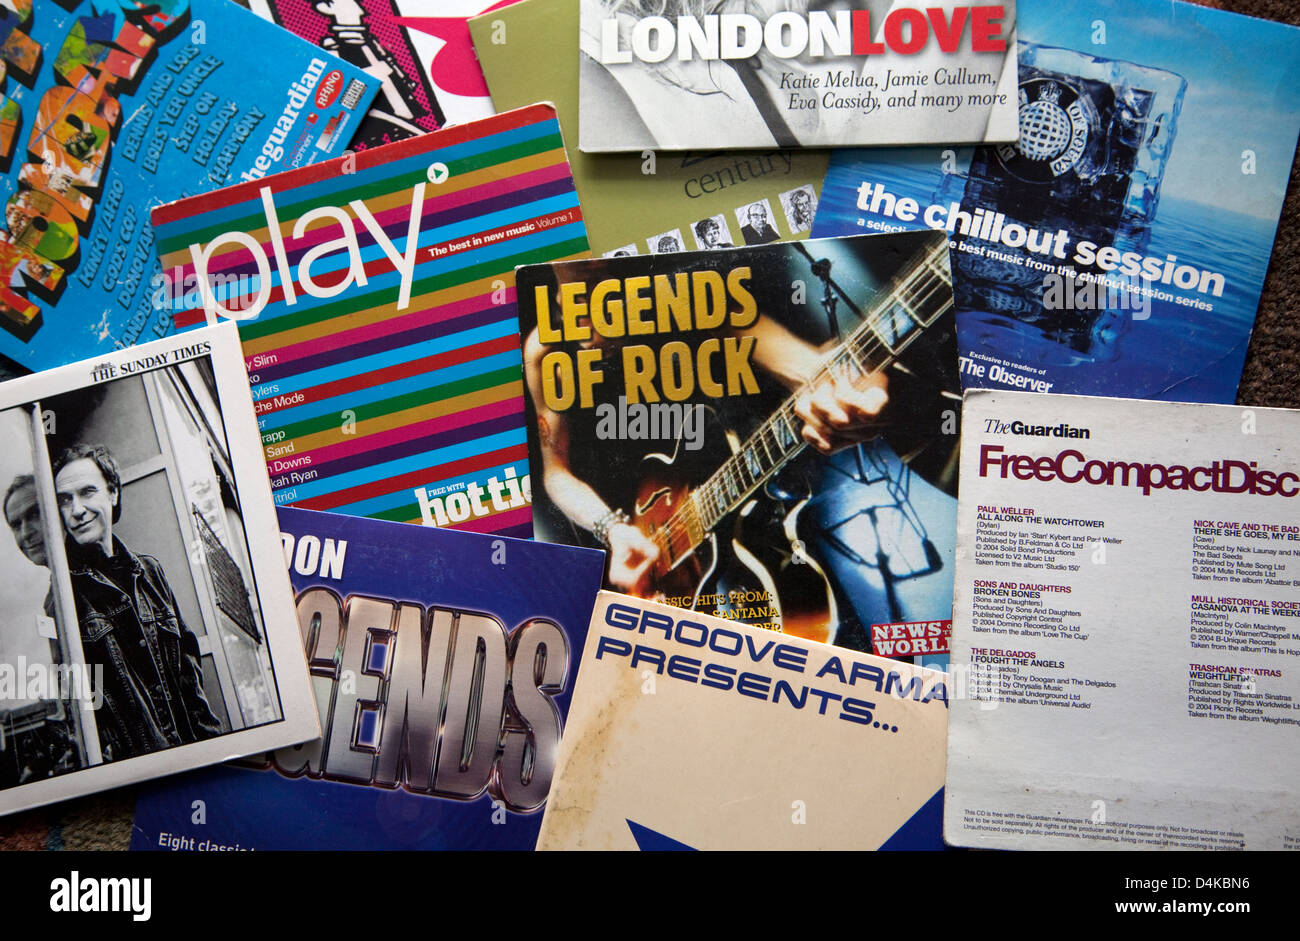 Free compact discs given away with newspapers, London - Stock Image